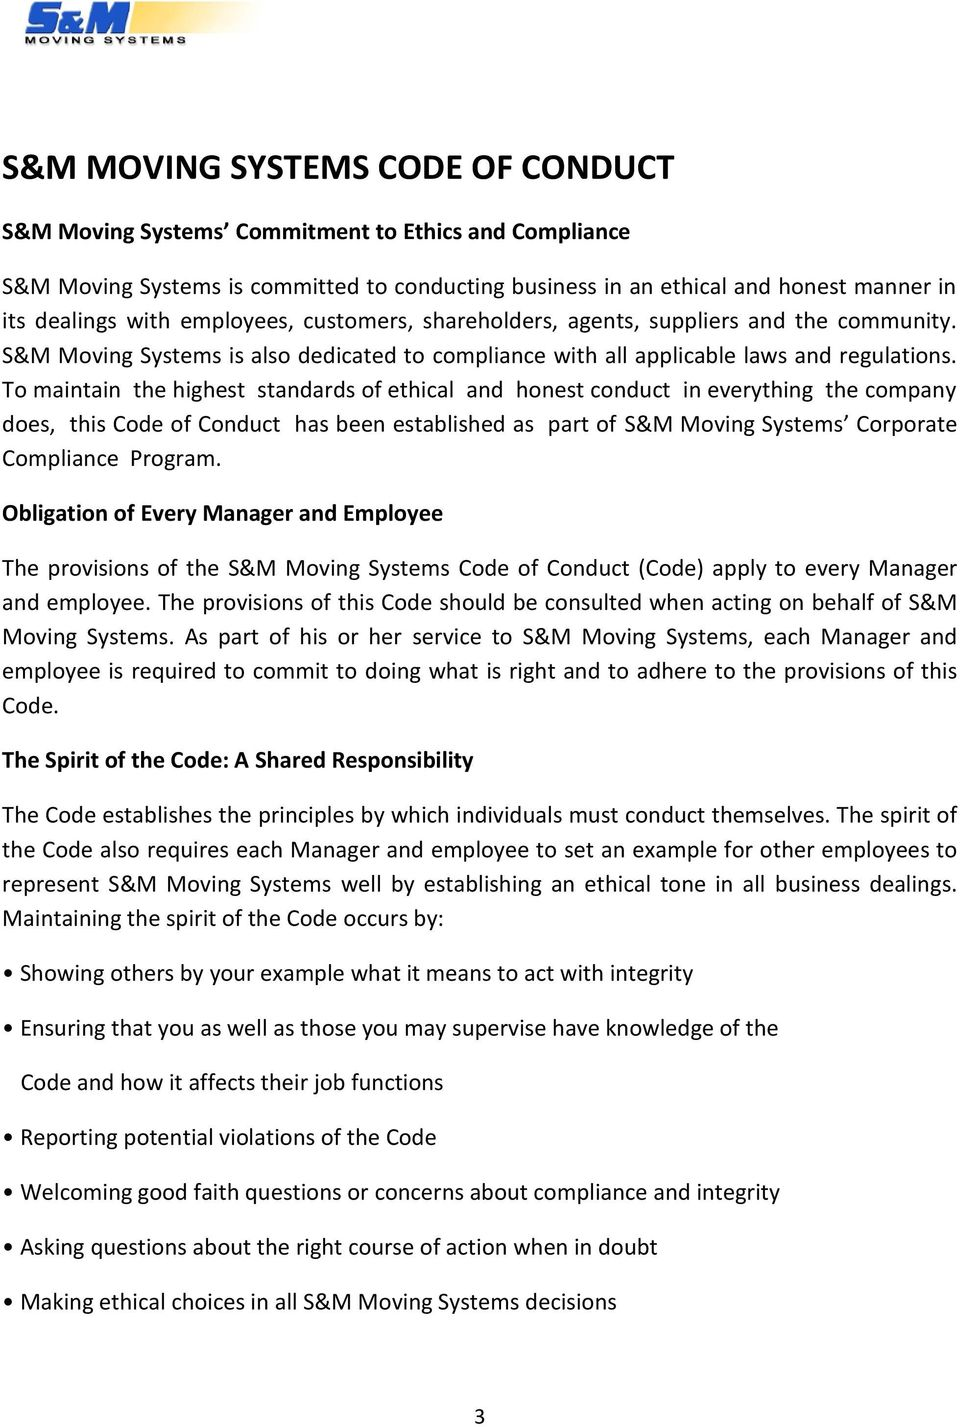 To maintain the highest standards of ethical and honest conduct in everything the company does, this Code of Conduct has been established as part of S&M Moving Systems Corporate Compliance Program.